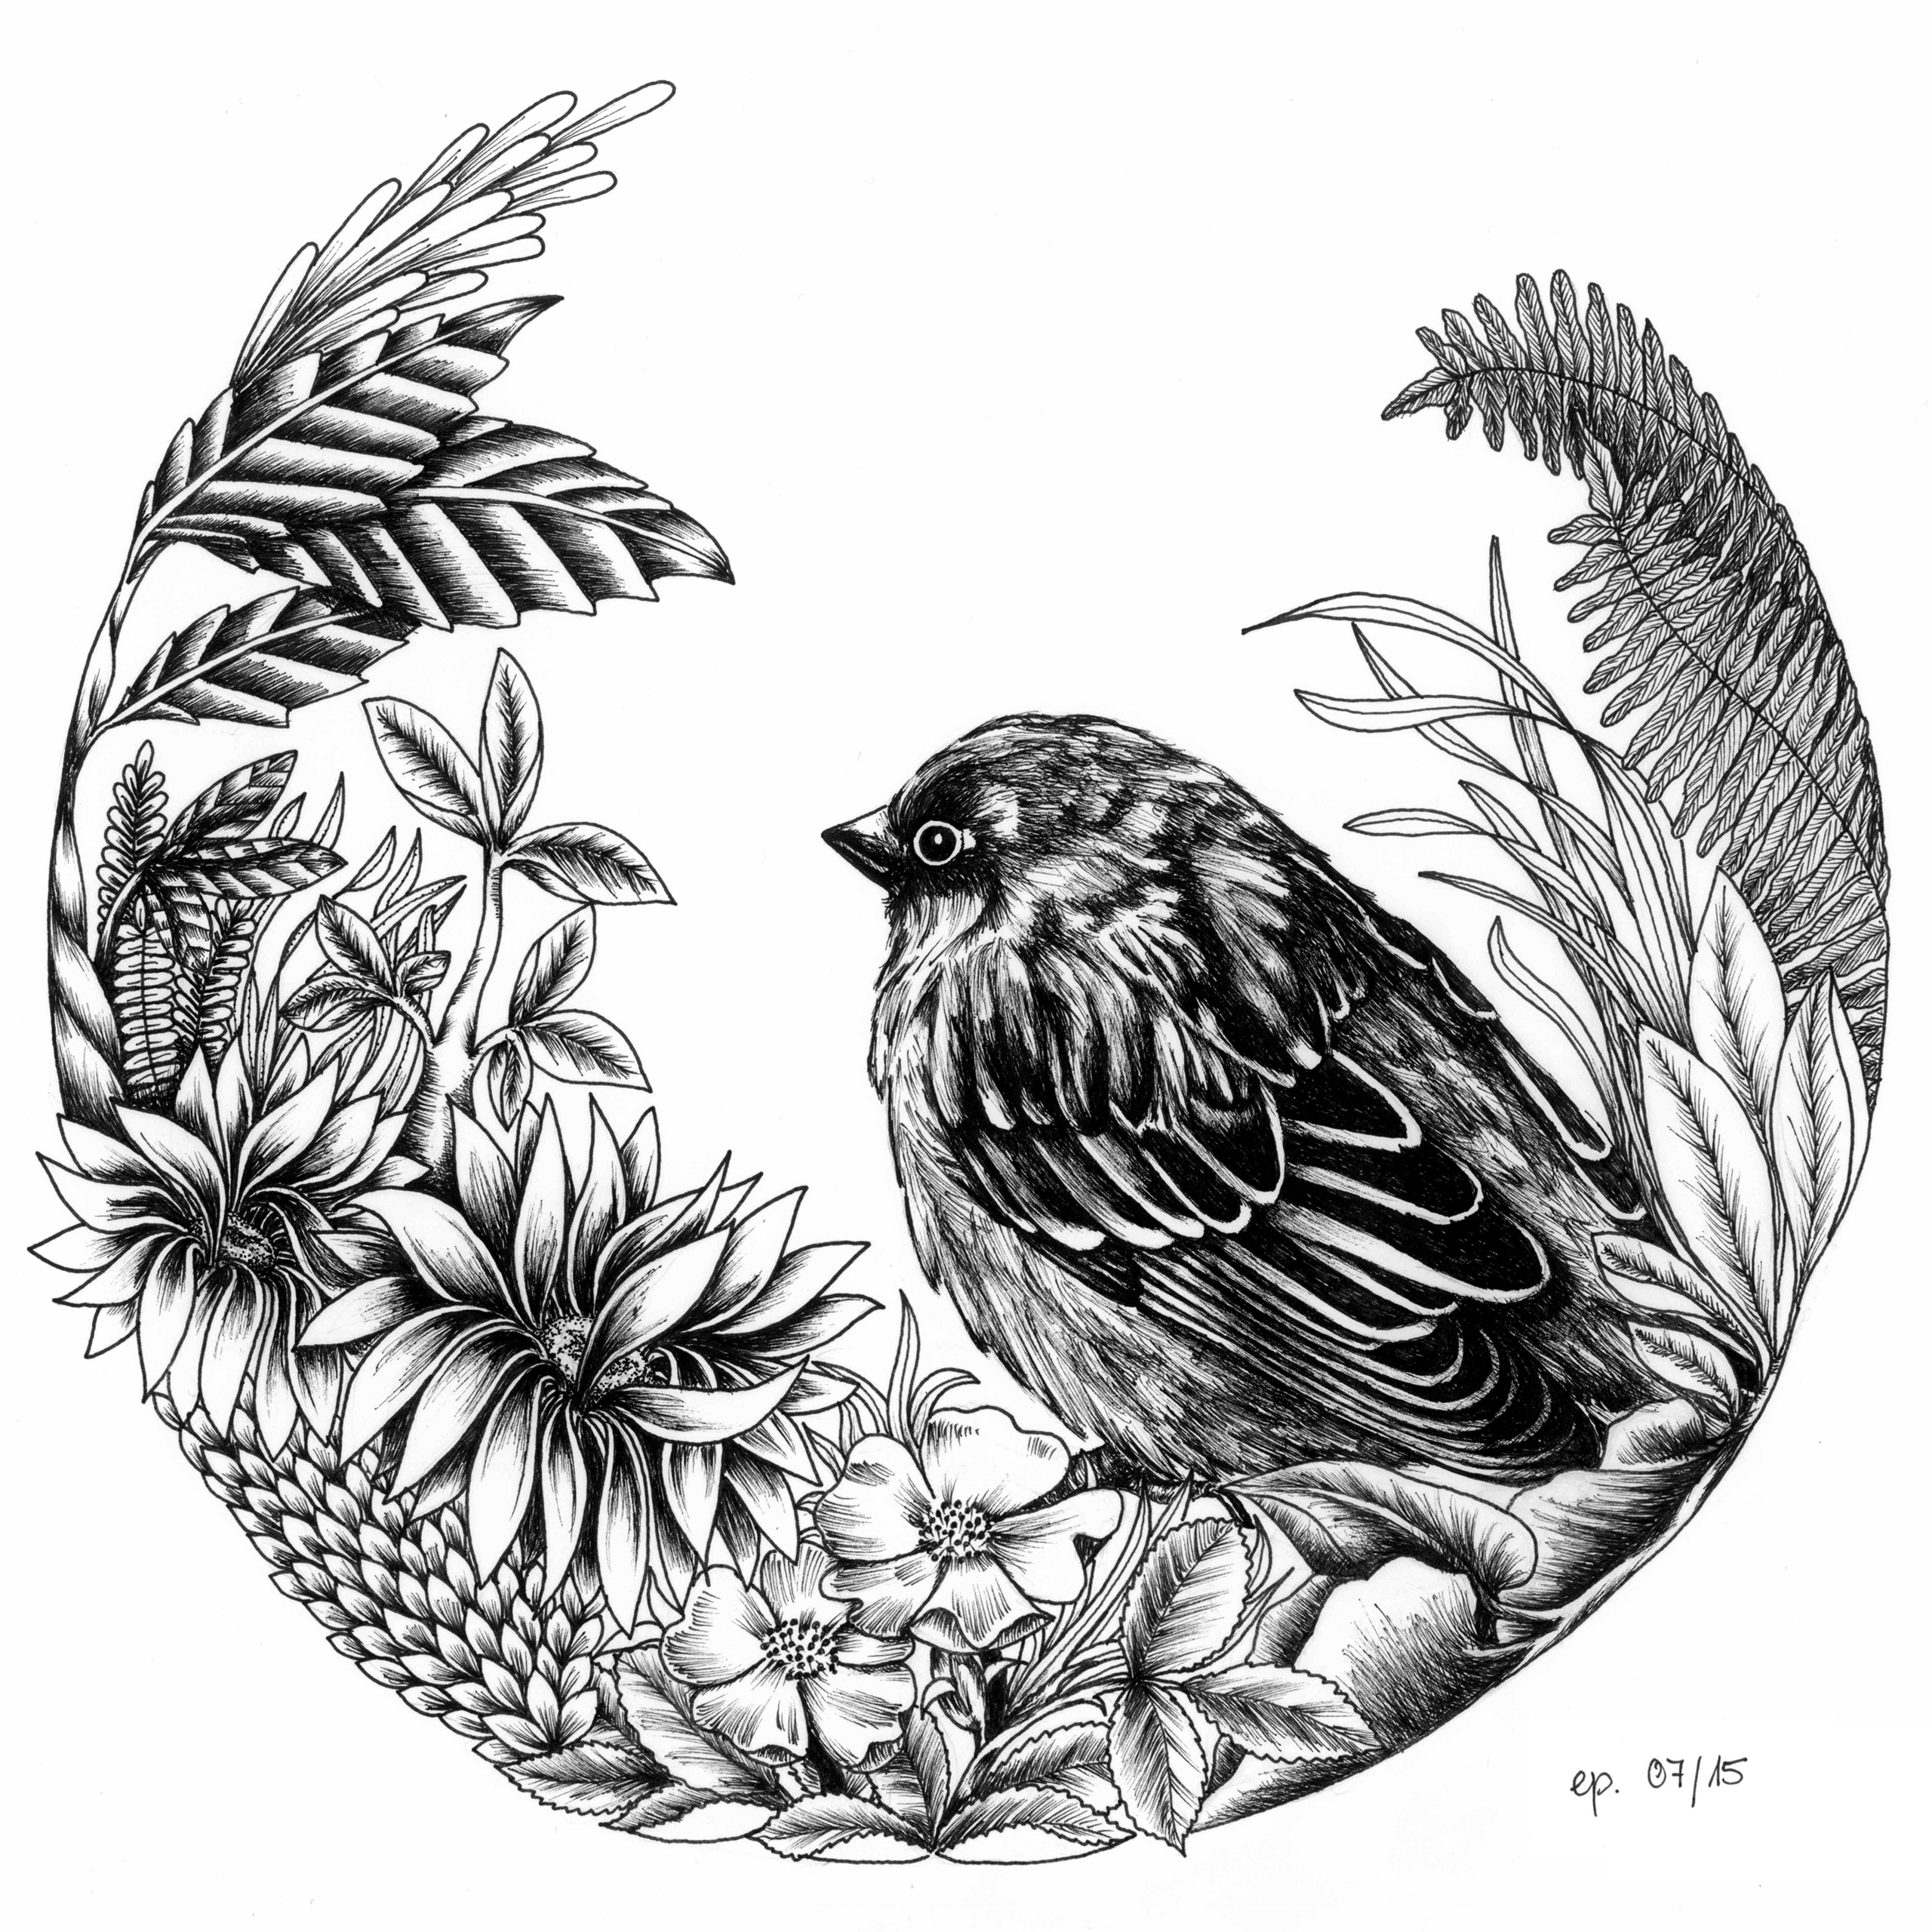 Sparrow - sparrow, illustration - ellenparzer | ello